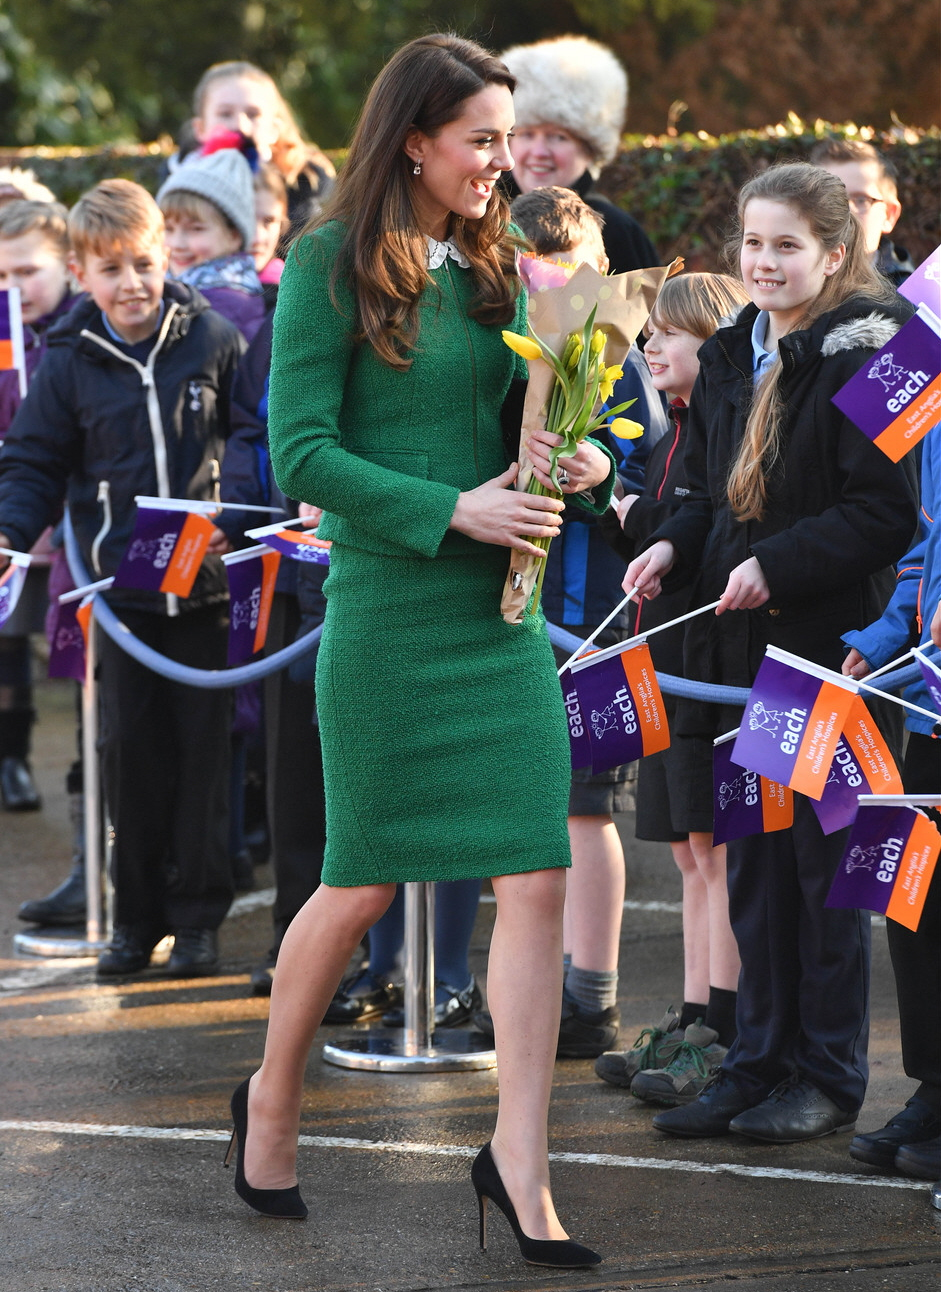 161215PCN_DuchessCambridgeMGS003  bitchy | Duchess Kate is 'fortunate' to be an actual princess as a result of she's 'properly taken care of' 161215PCN DuchessCambridgeMGS003